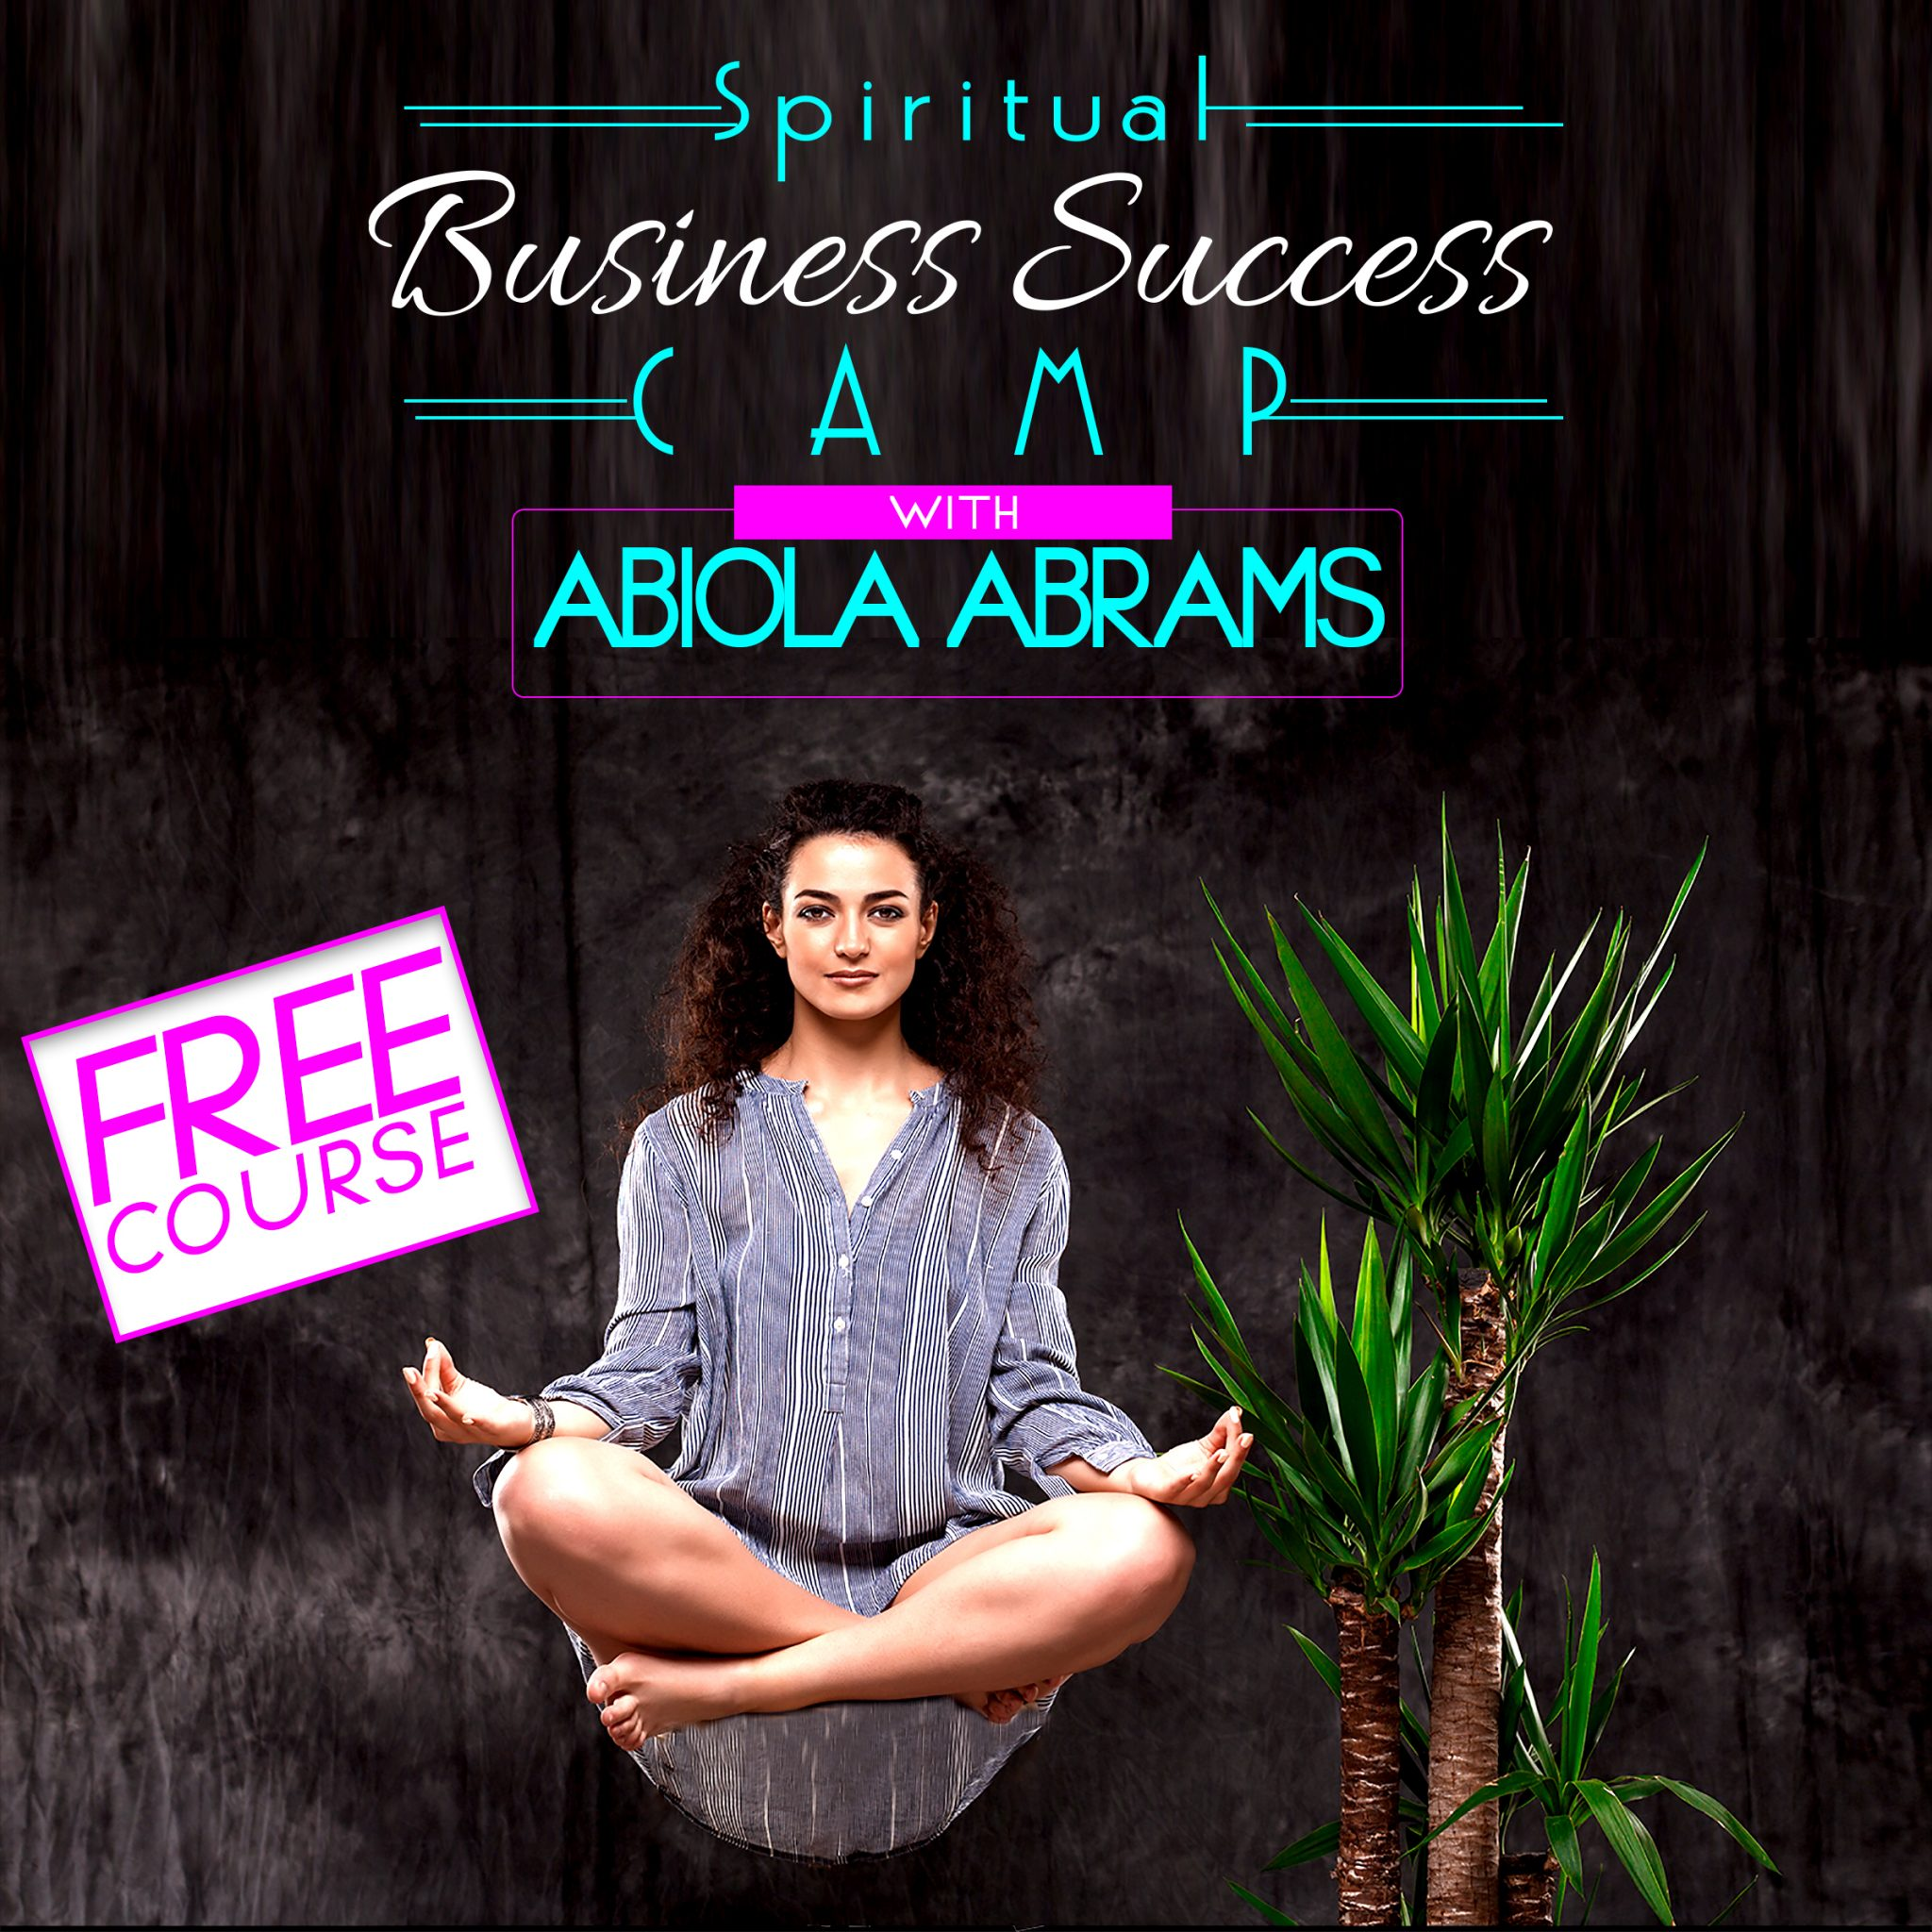 Spiritual Business Life Coach - changing beliefs